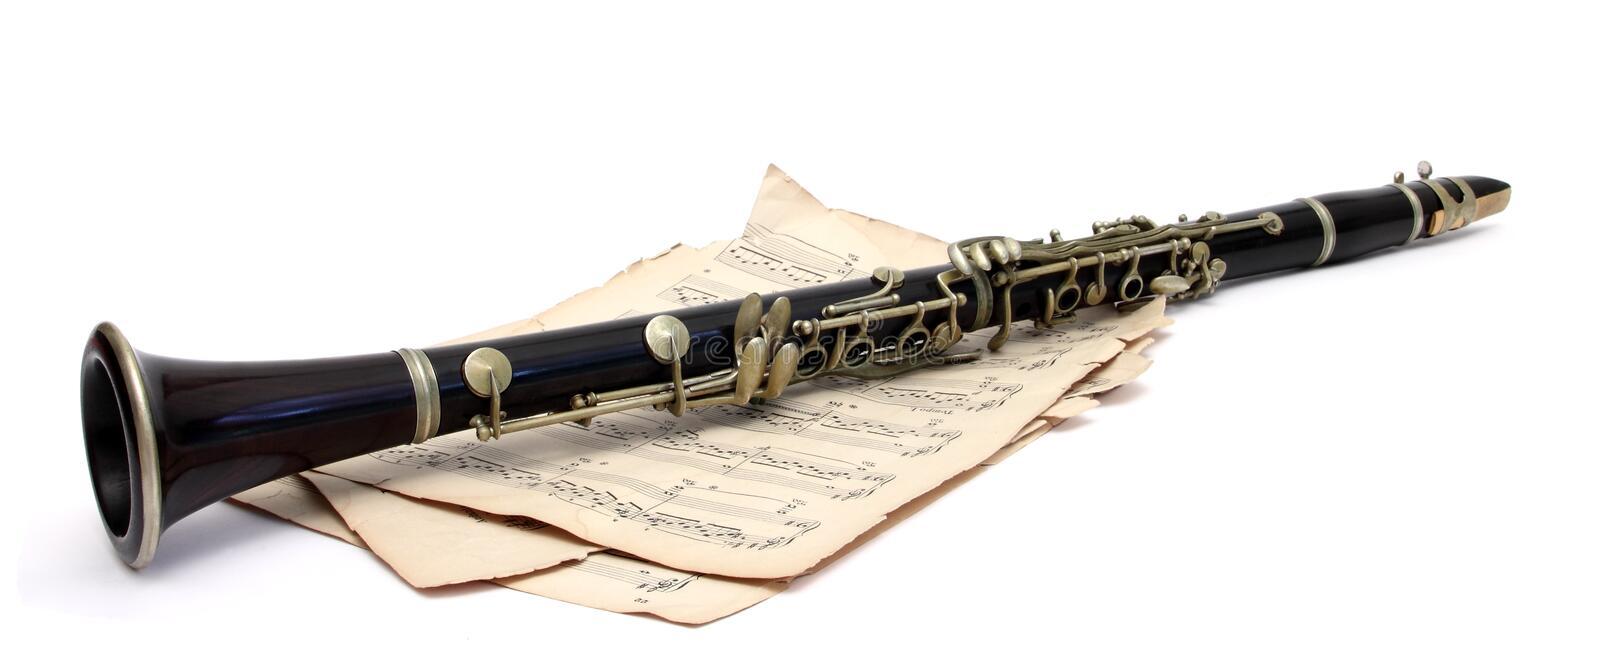 Antique clarinet. An old clarinet on music sheets over white stock image